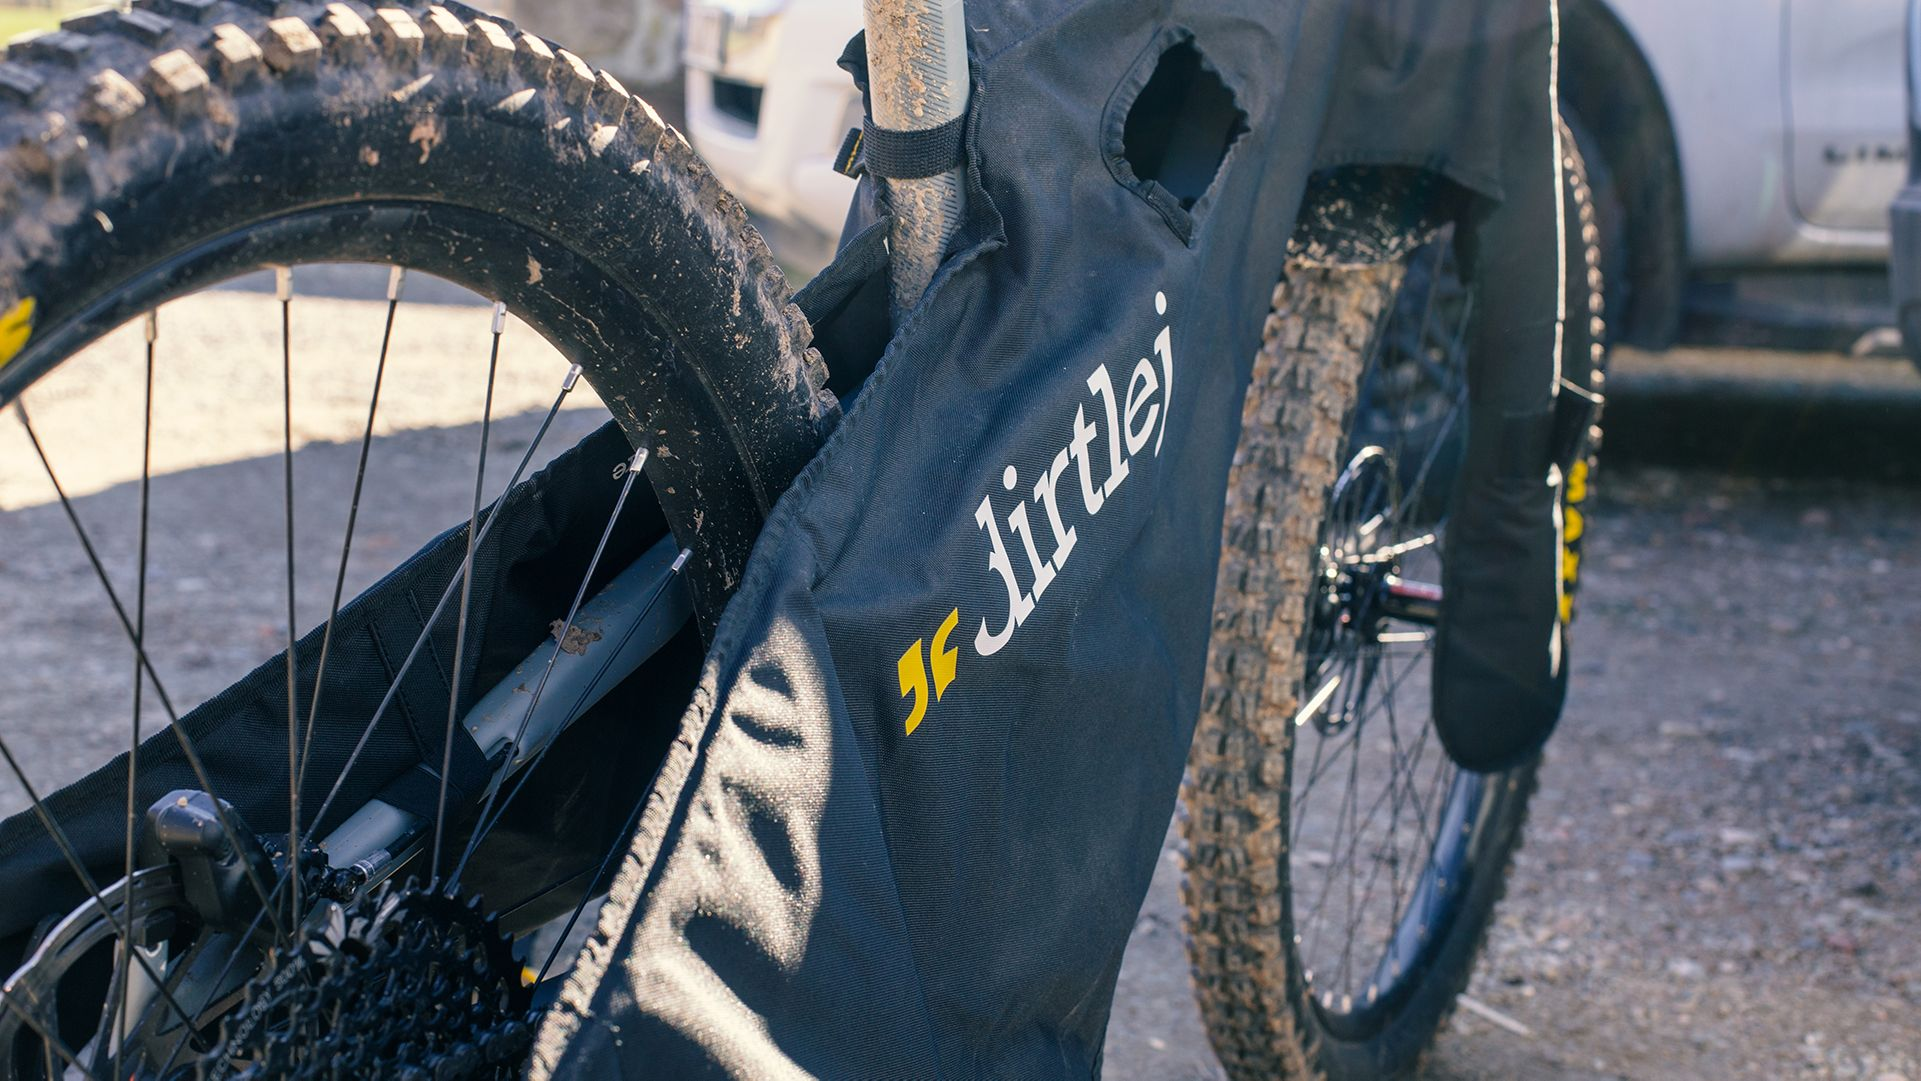 dirtlej - bikeprotection bikewrap